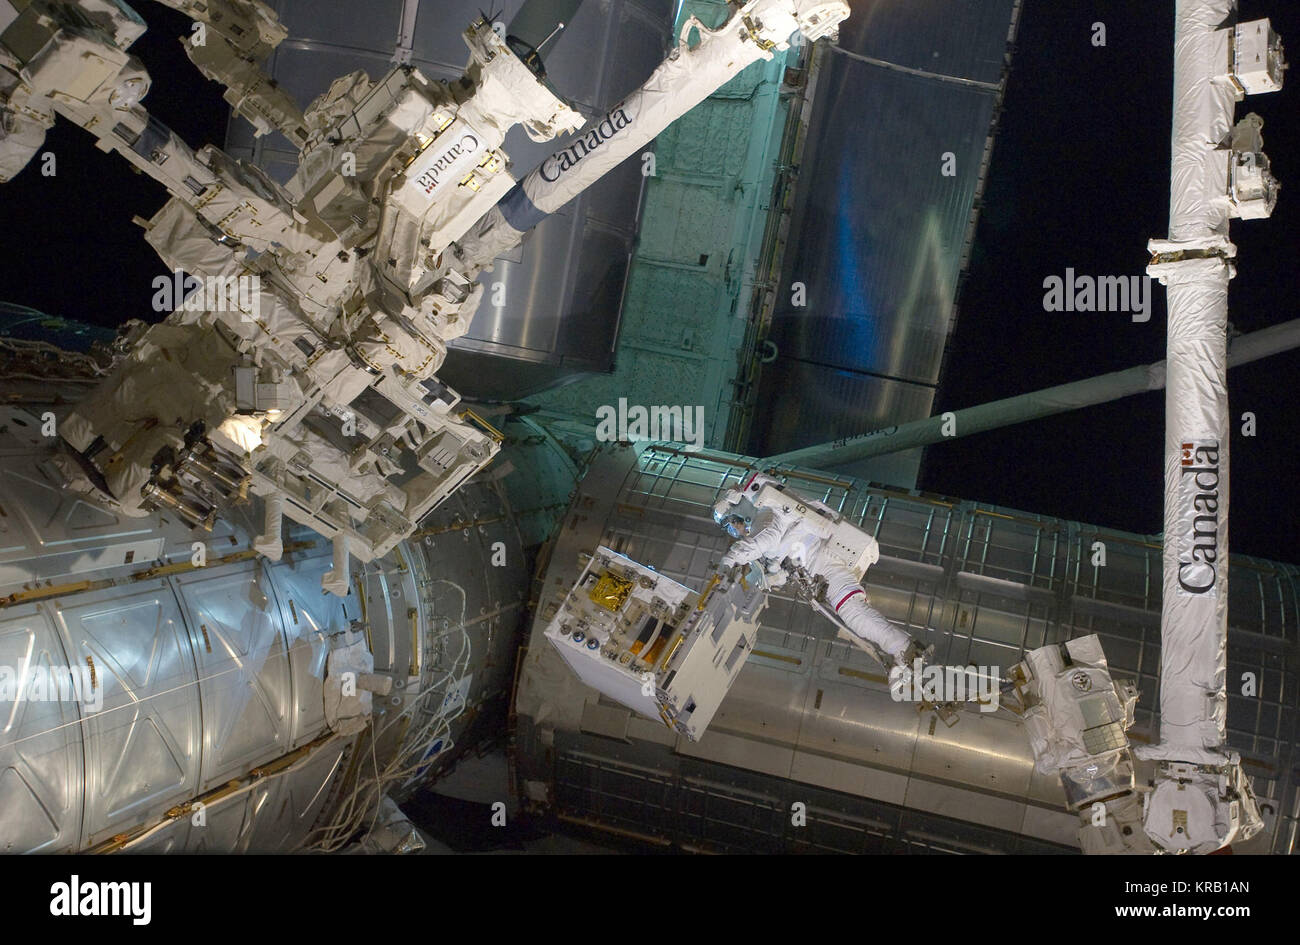 NASA image captured July 12, 2011  With his feet secured on a restraint on the space station remote manipulator Stock Photo